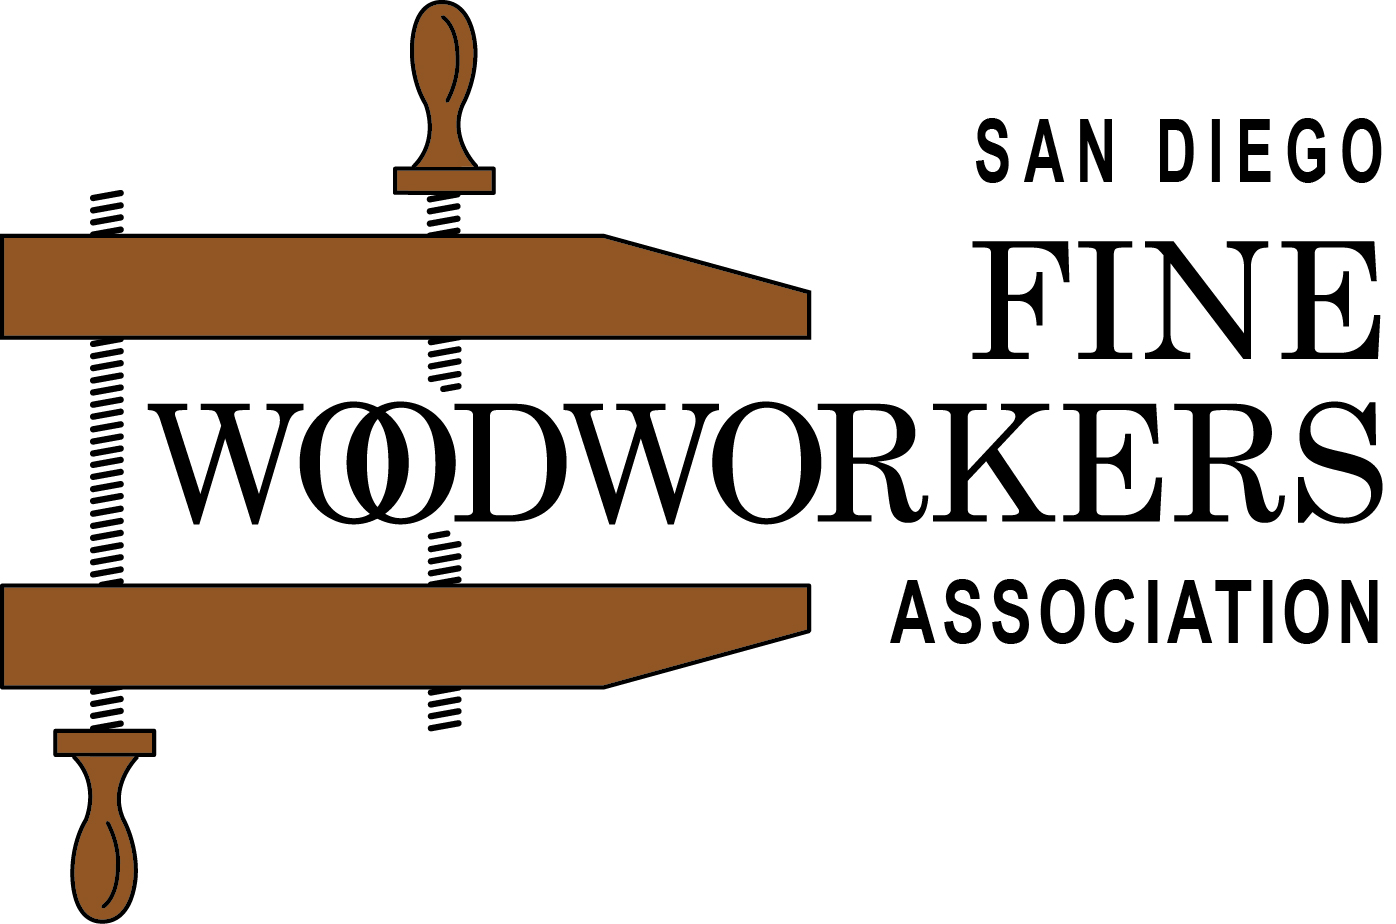 SD Woodworking